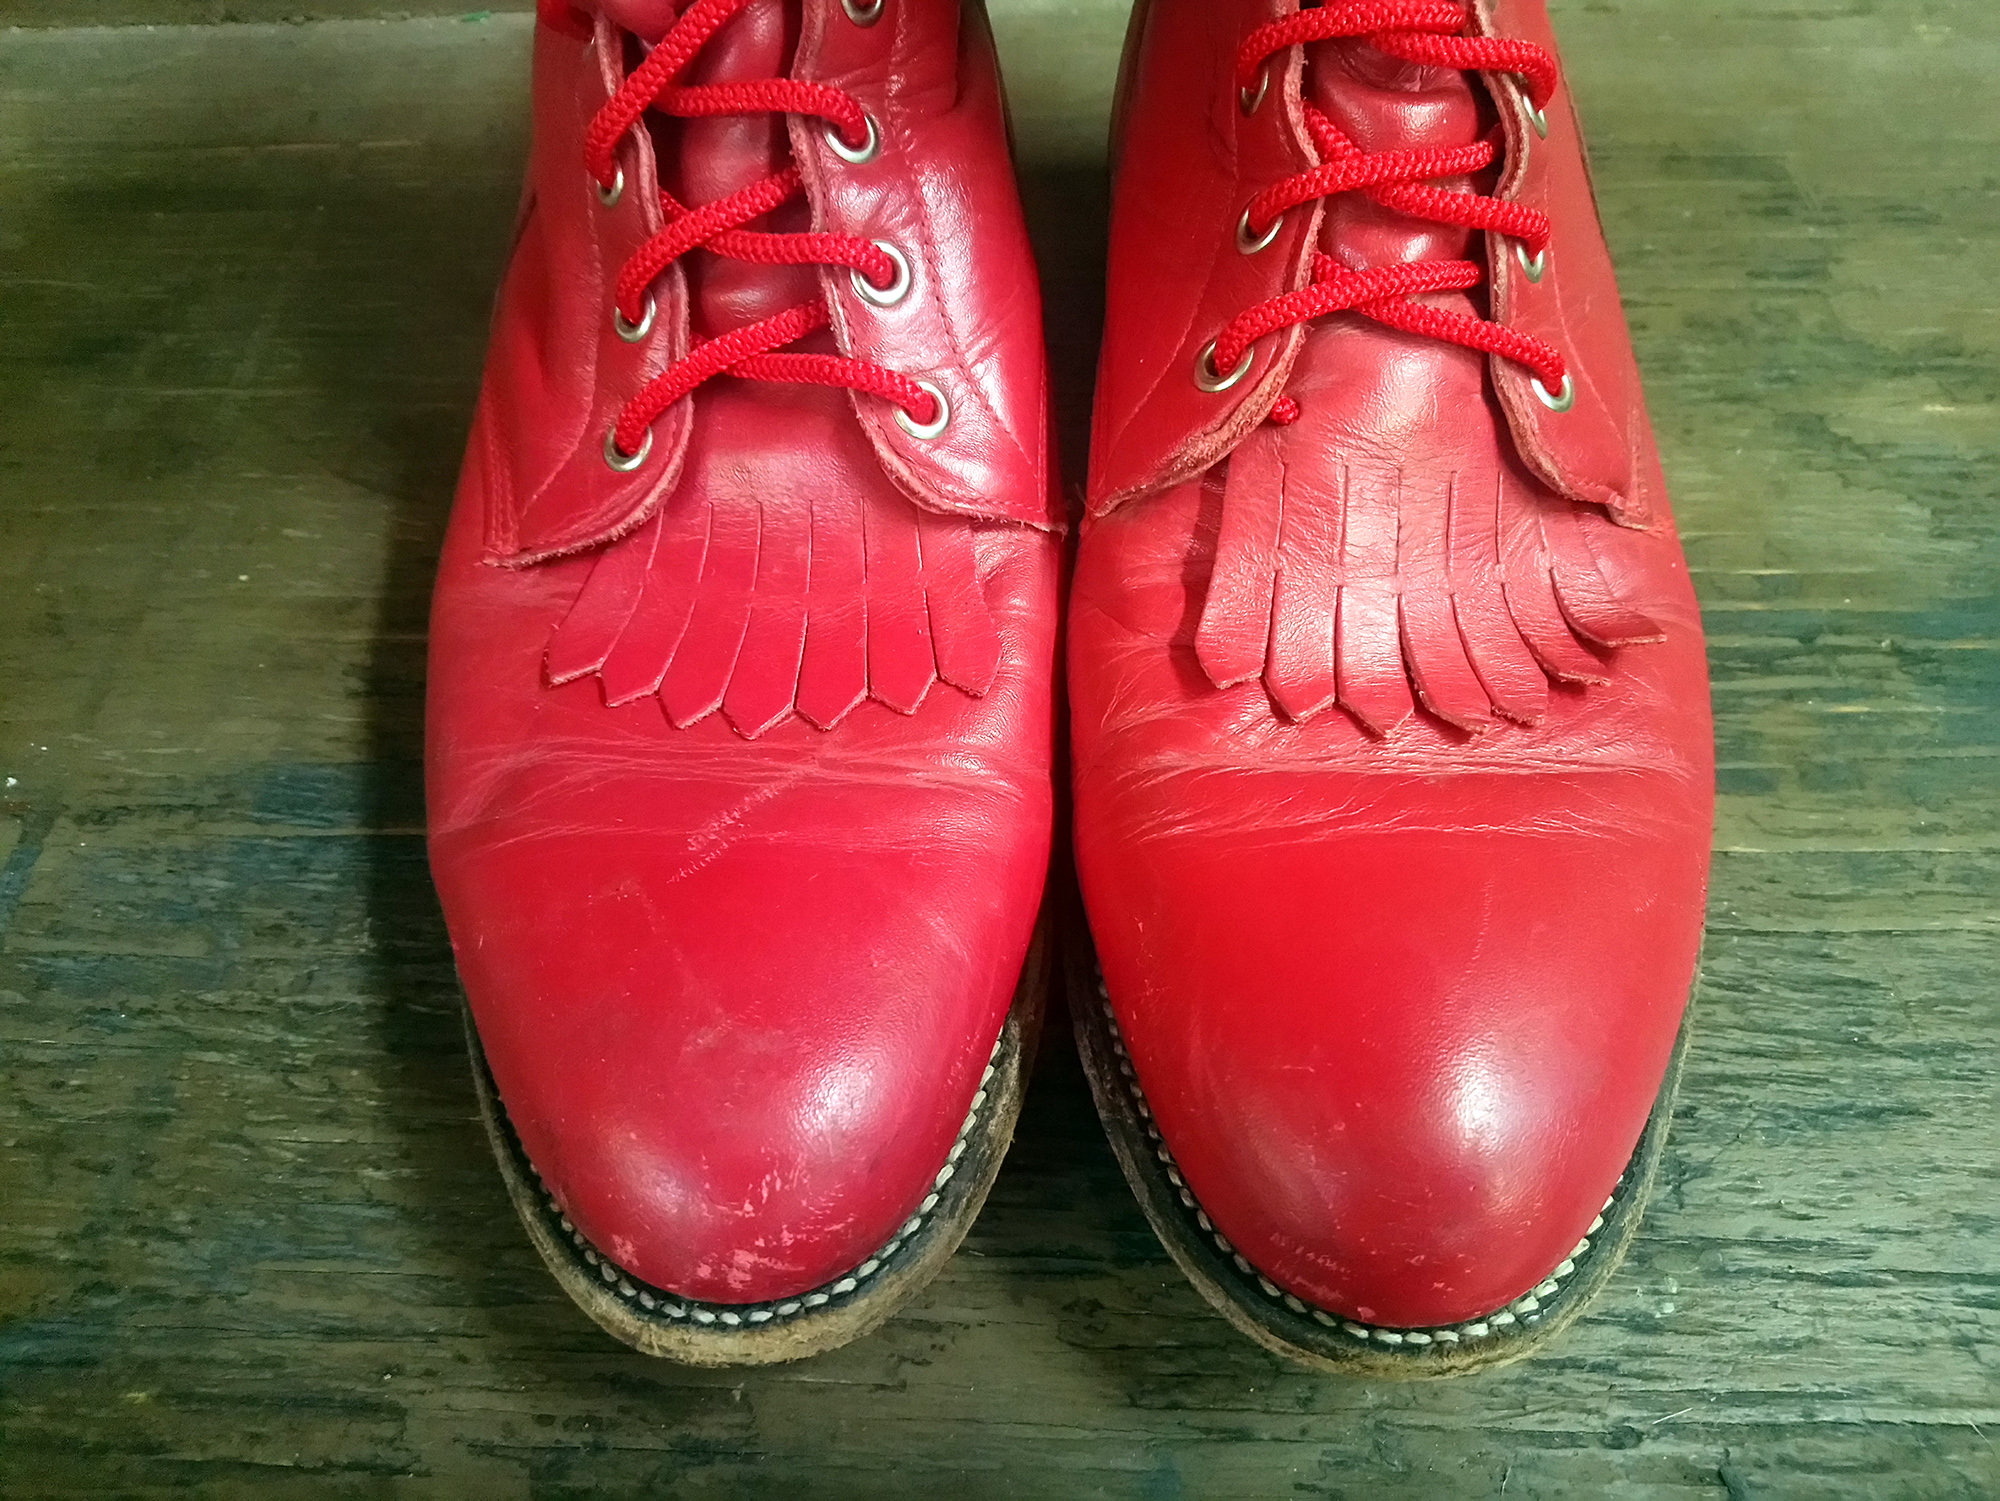 Vintage Red Boots